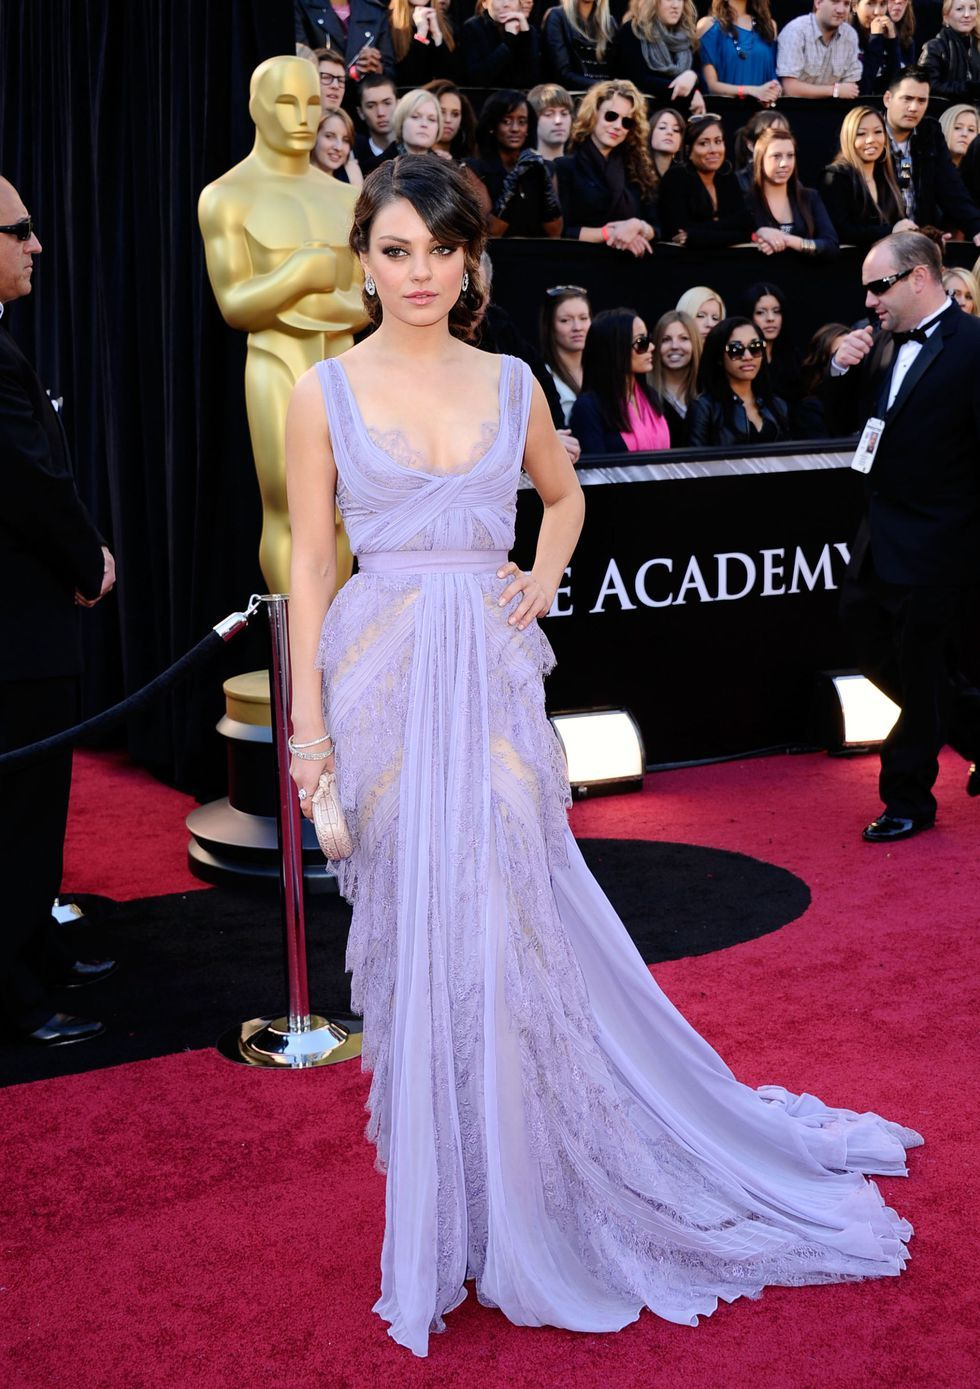 Oscars red carpet fashion: A look back at the most